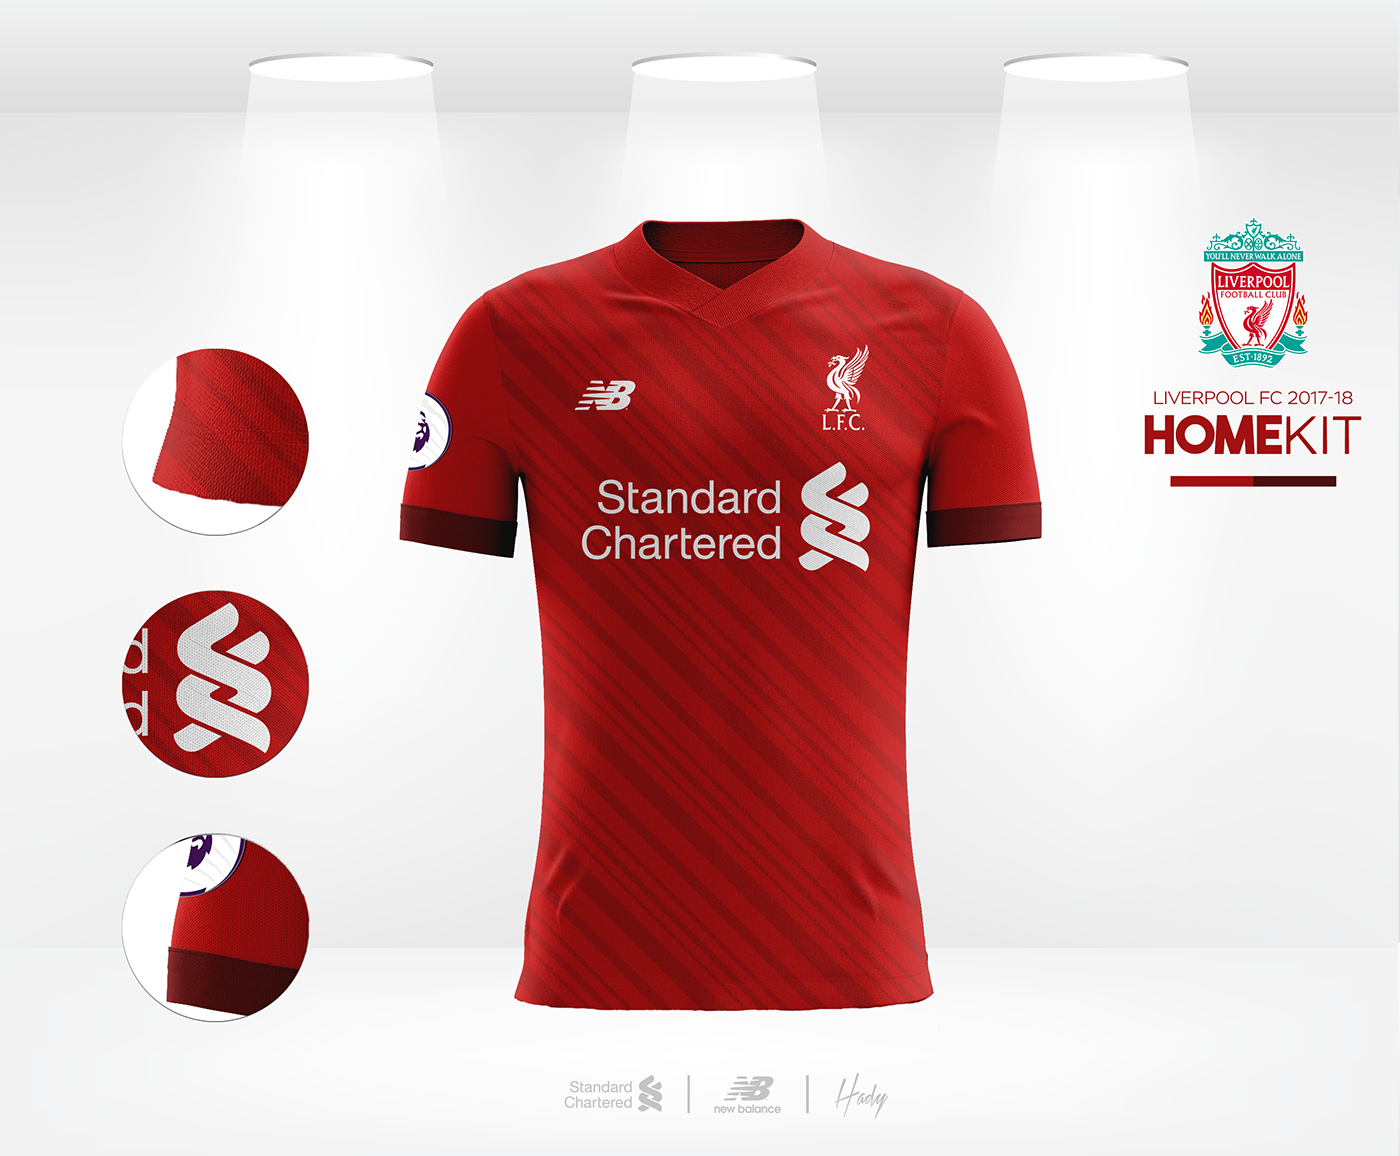 Liverpool FC 2017-18 Kits Concept. on Behance